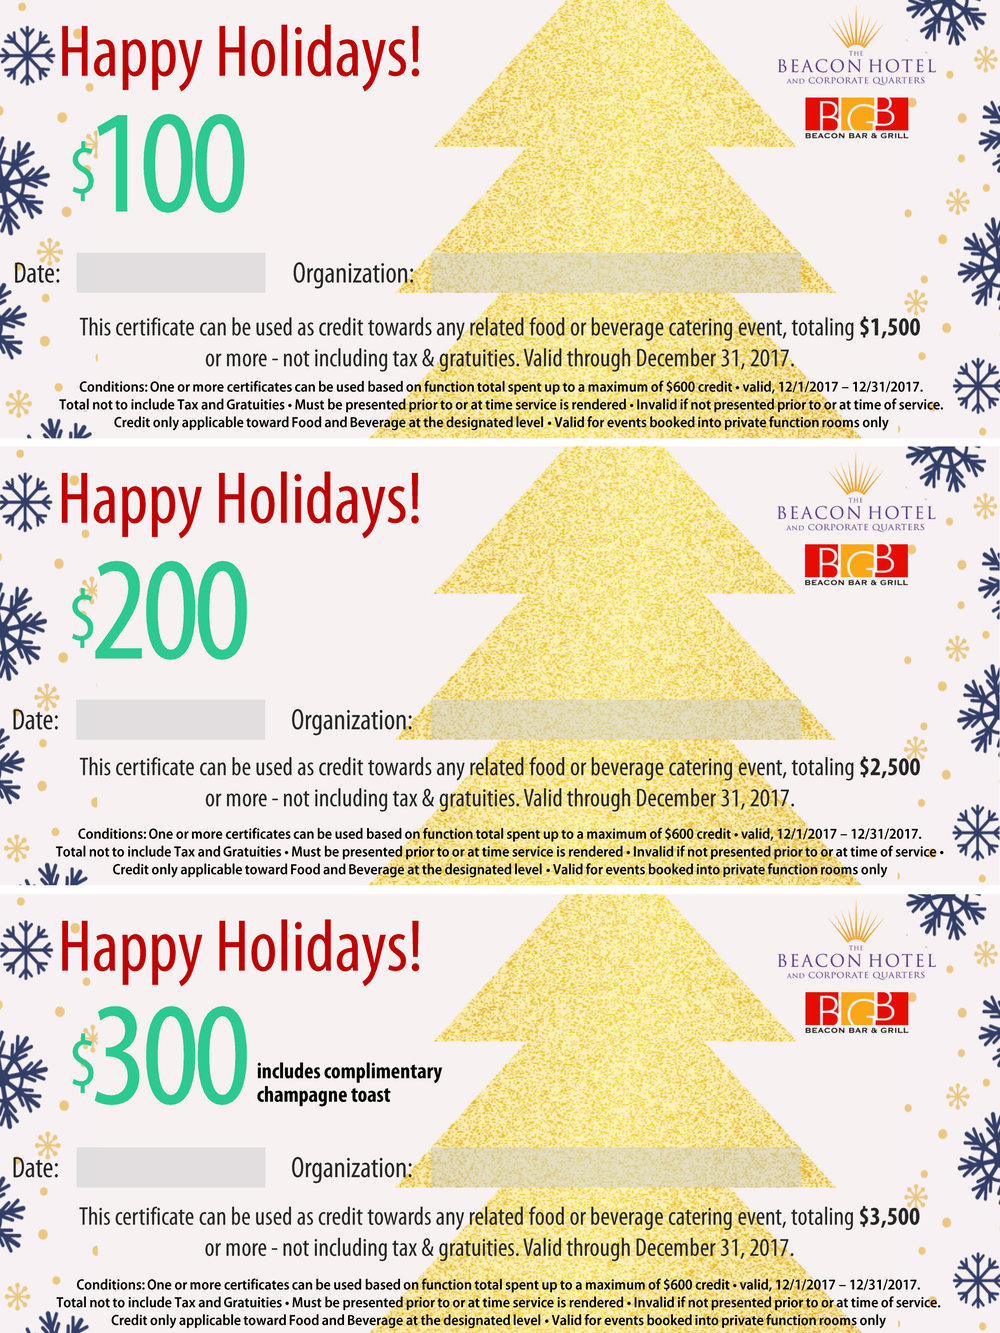 2017HolidayCreditVouchers.jpg